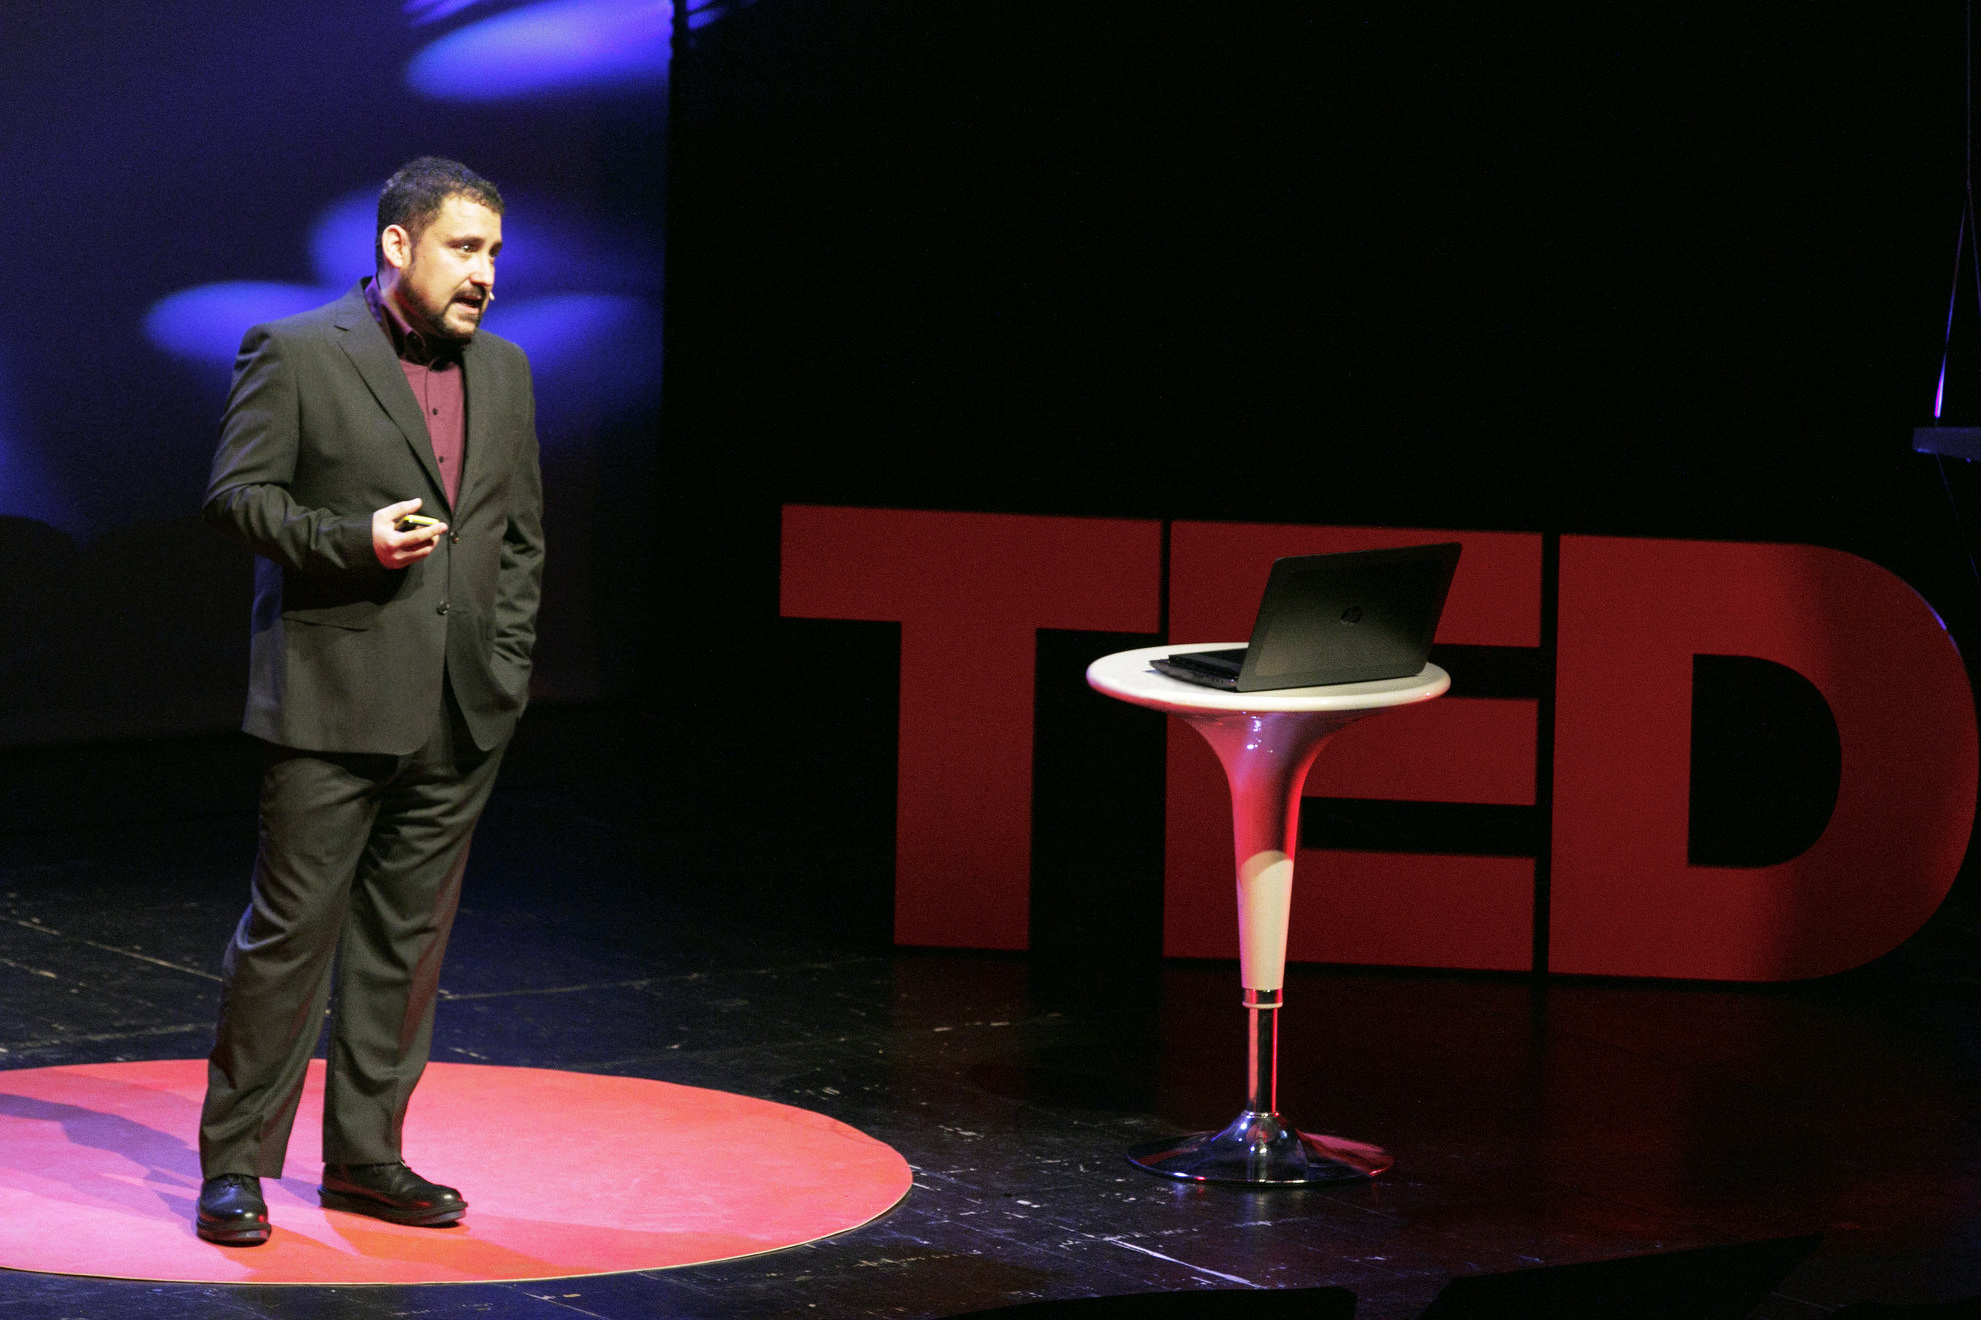 Victor Perez during his TED talk